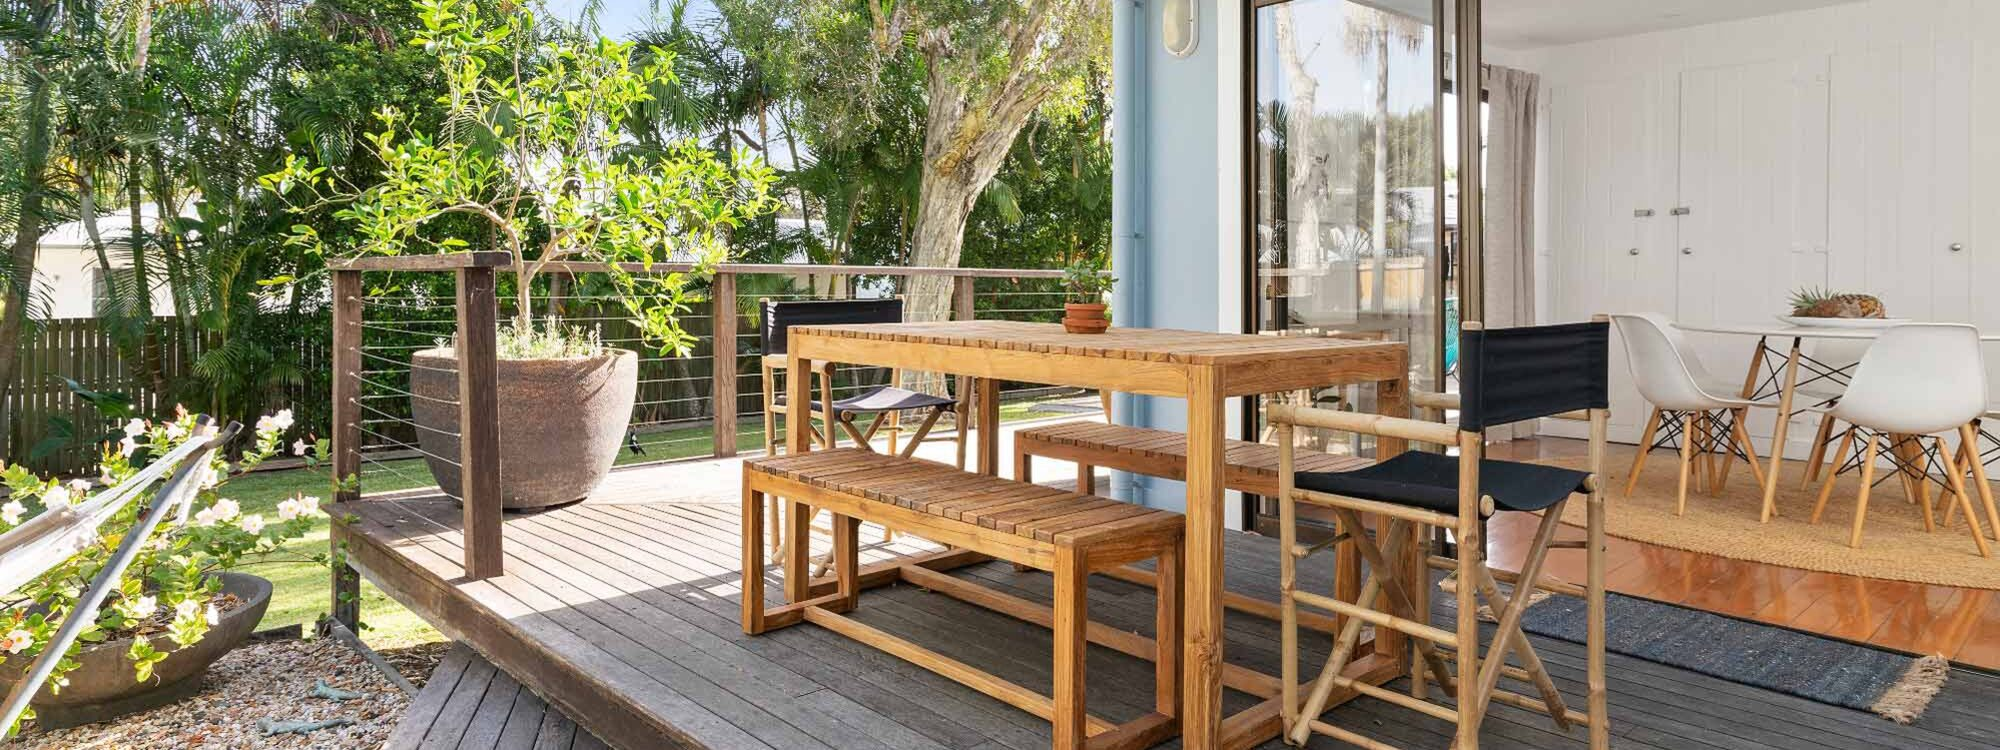 San Juan - Byron Bay - Outdoor Dining Area